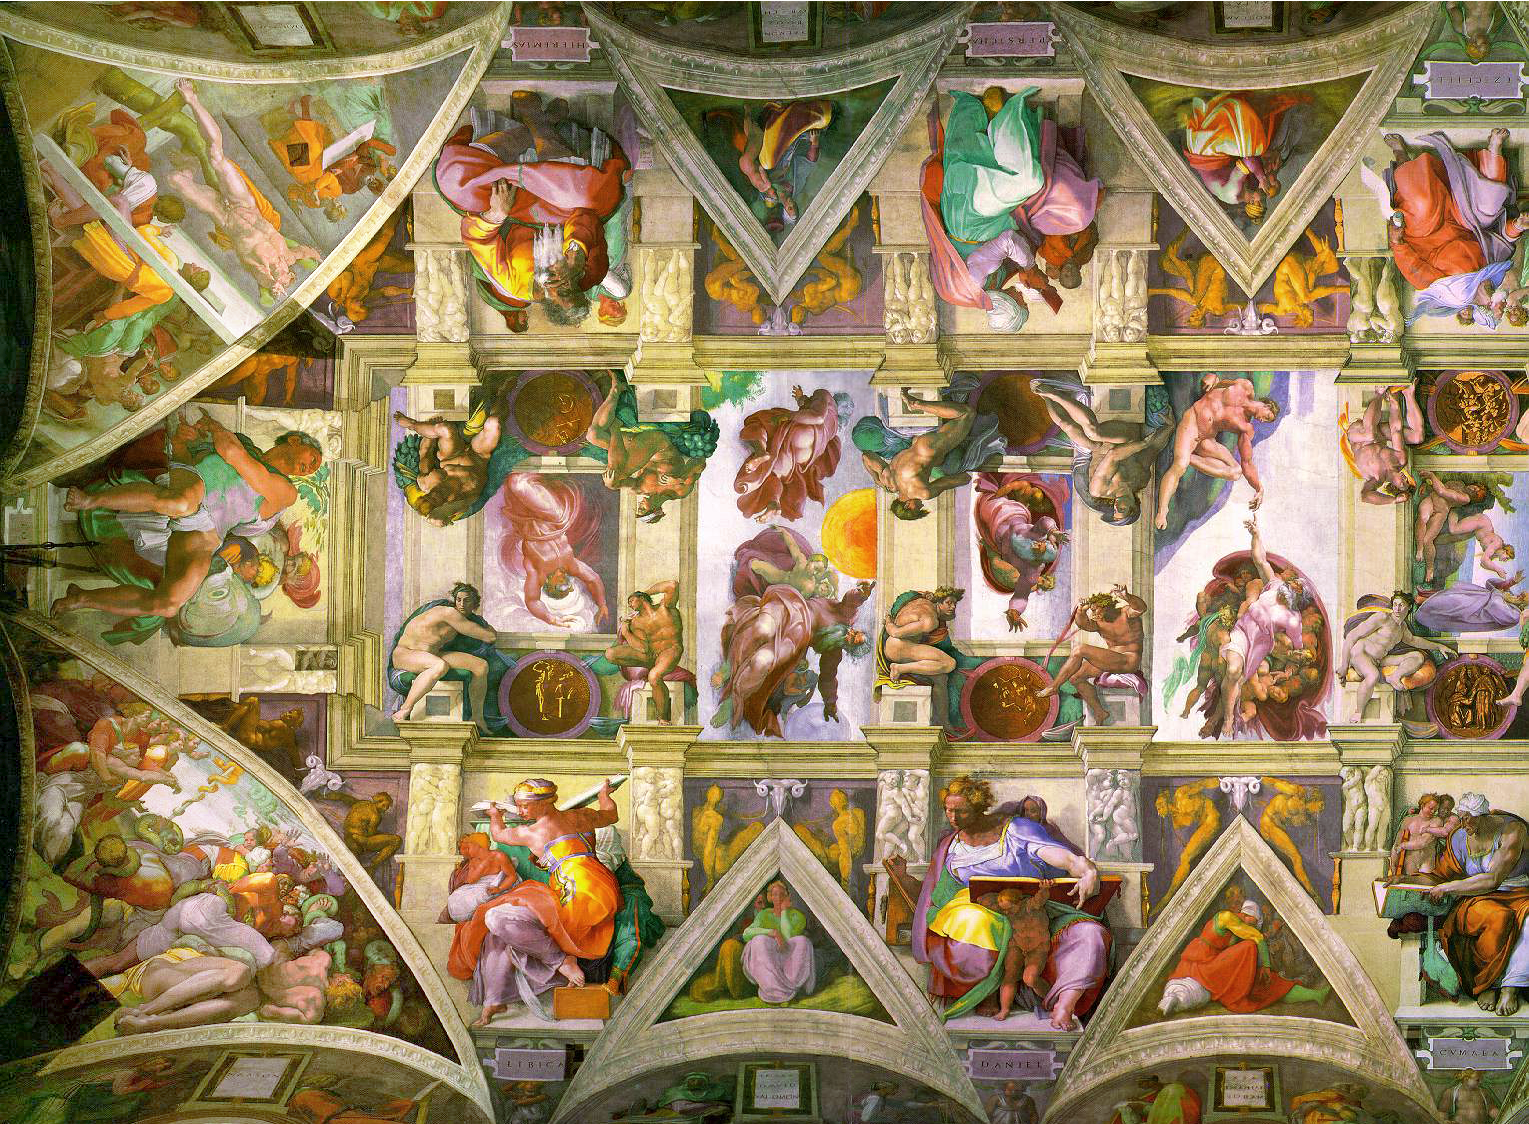 Figures come alive as seen in this view of ceiling after restoration. Photo: WikiMedia.org.